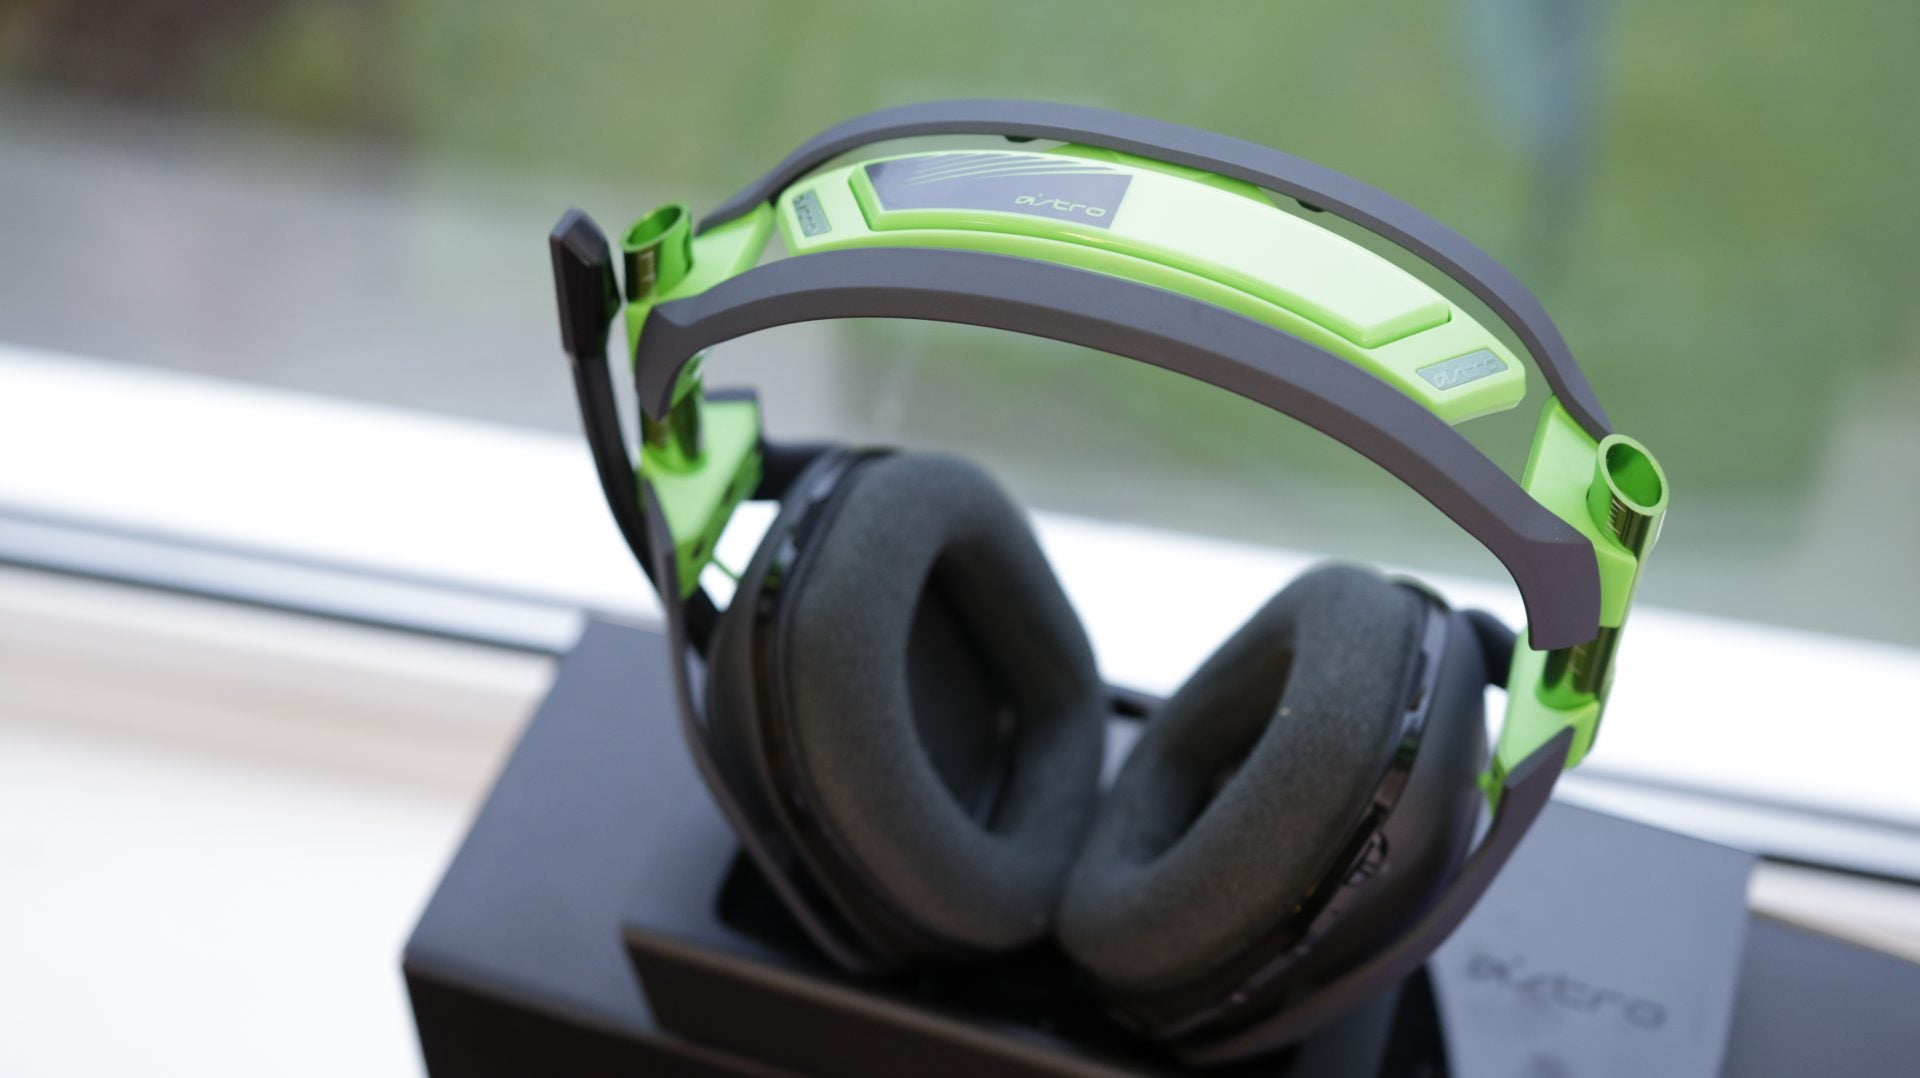 This best-in-class gaming headset is 33% off for Prime Day